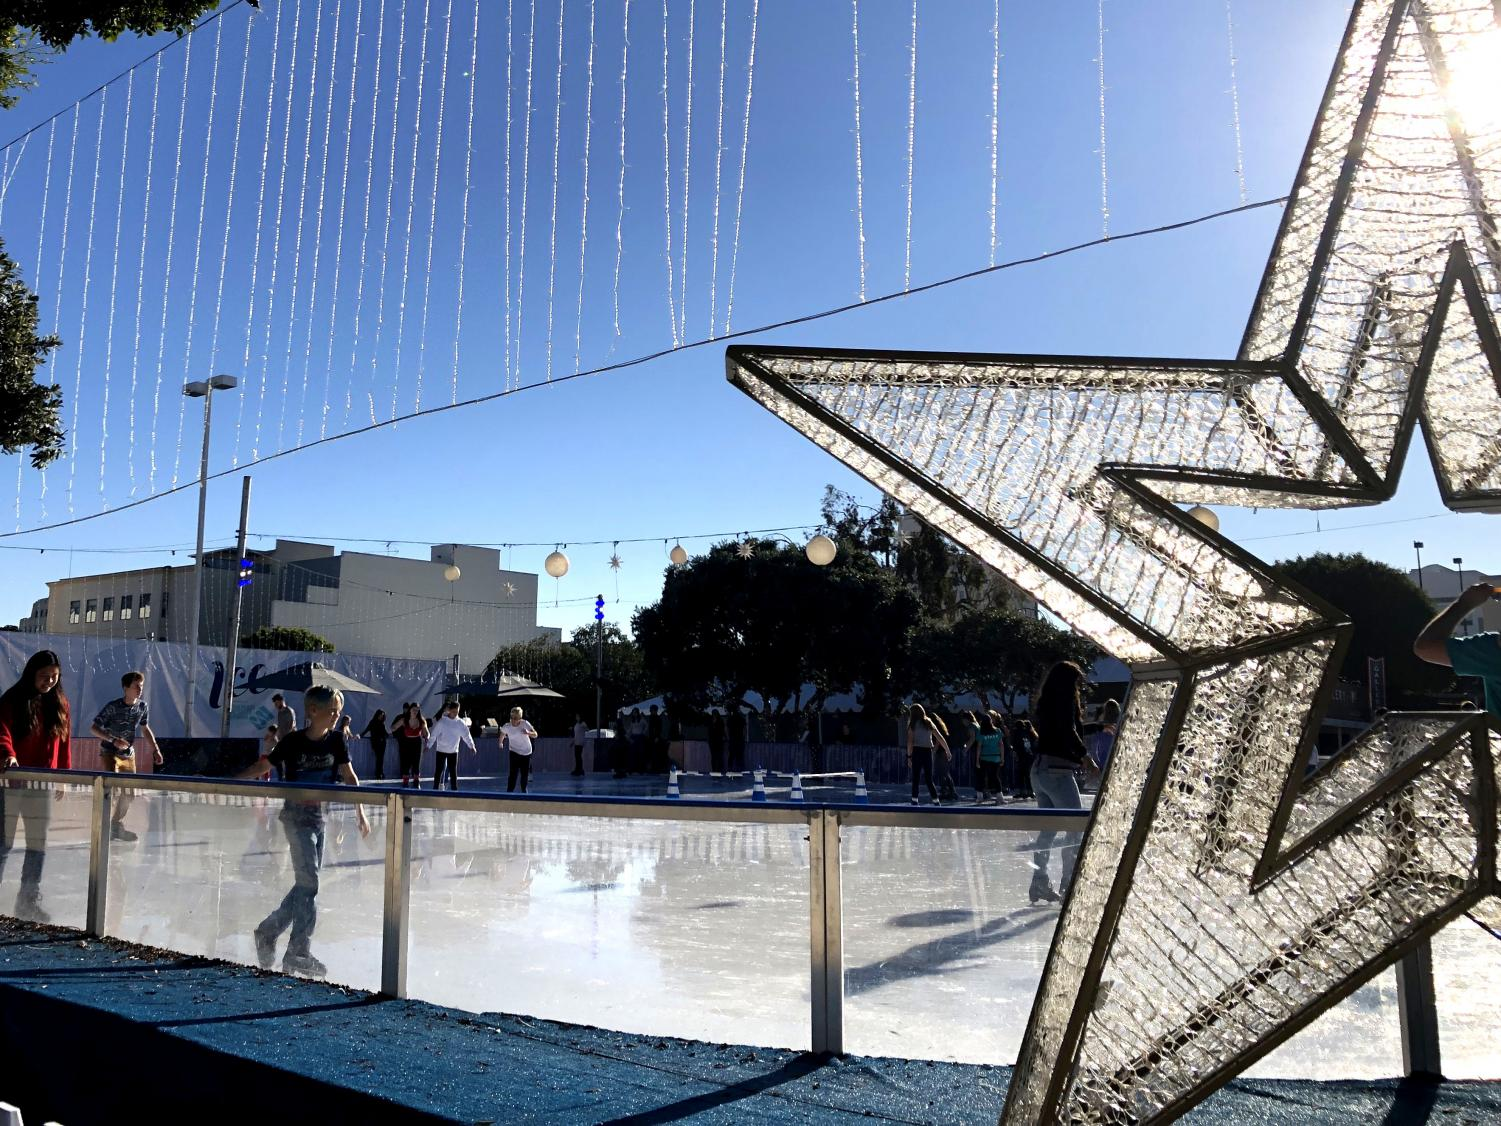 At Santa Monica's Ice, ice skaters skate around a rink. This rink is available during the wintertime, and opened up on Nov. 3, 2018.